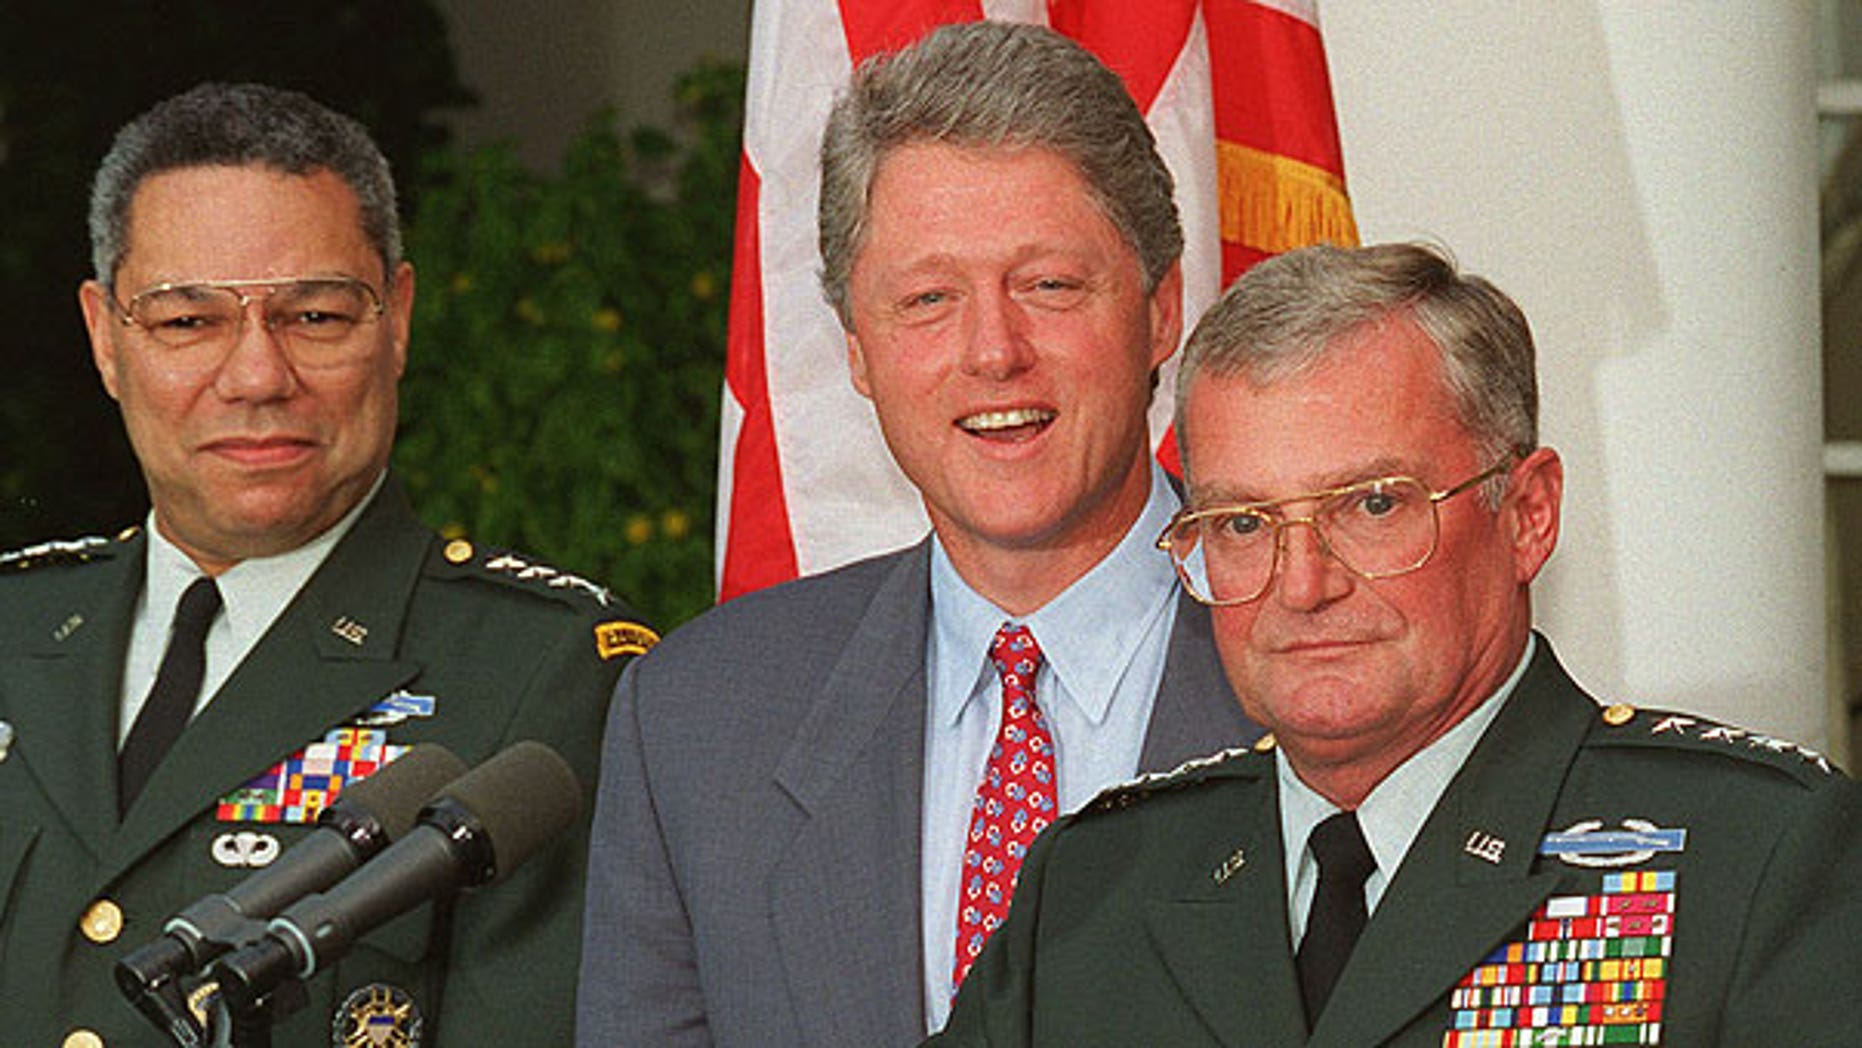 In this Aug. 11, 1993 file photo, Army Gen. John Shalikashvili speaks in the Rose Garden of the White House in Washington accompanied by President Bill Clinton and Joint Chiefs Chairman Gen. Colin Powell.